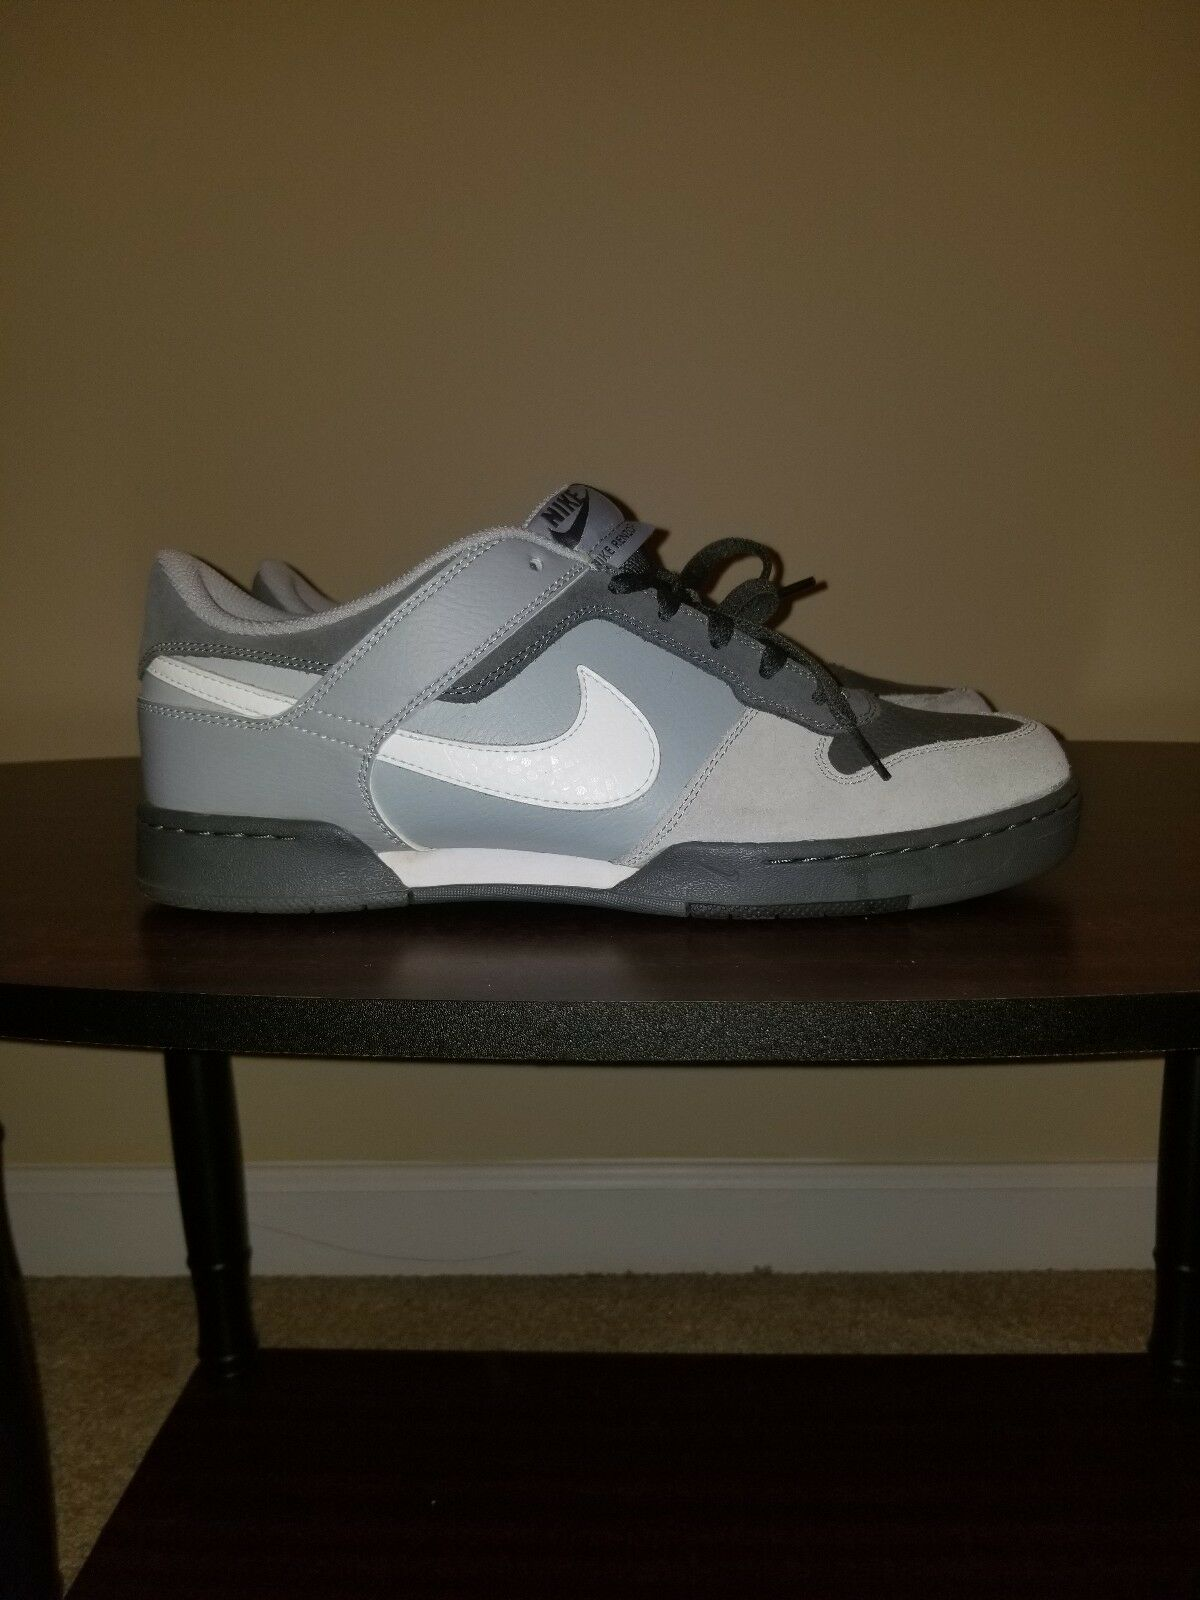 Nike Dunk Renzo Renzo Renzo Grey Great Condition Great Price Size 11.5 77c970